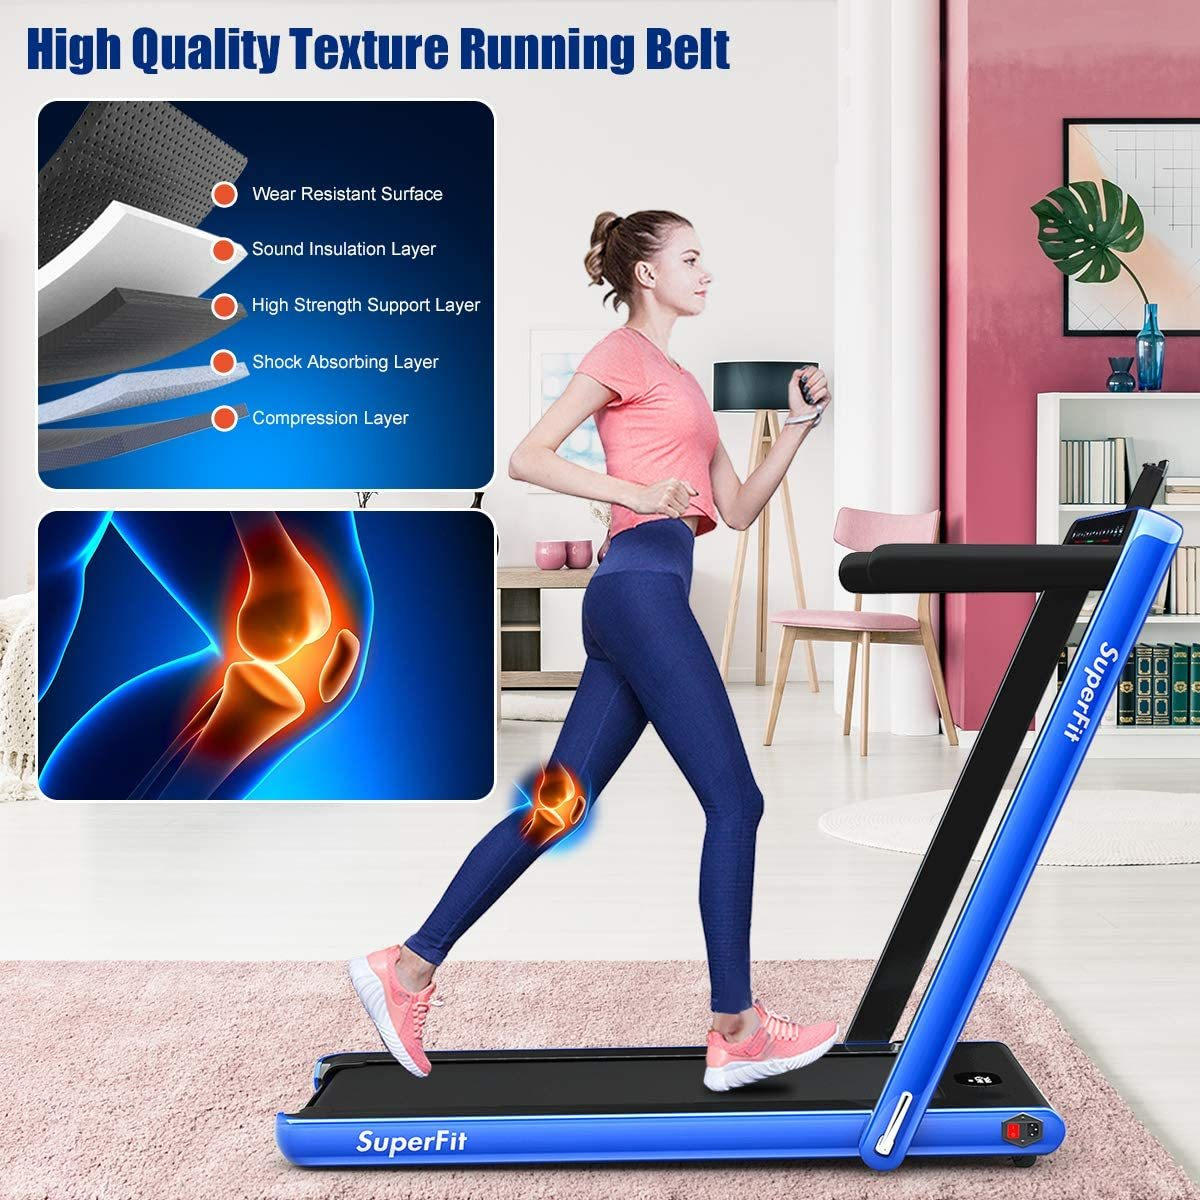 2 in 1 Under Desk Treadmill, 2.25HP Folding Walking Jogging Machine with Dual Display, Bluetooth Speaker & Remote Controller, Electric Motorized Treadmill for Home/Gym